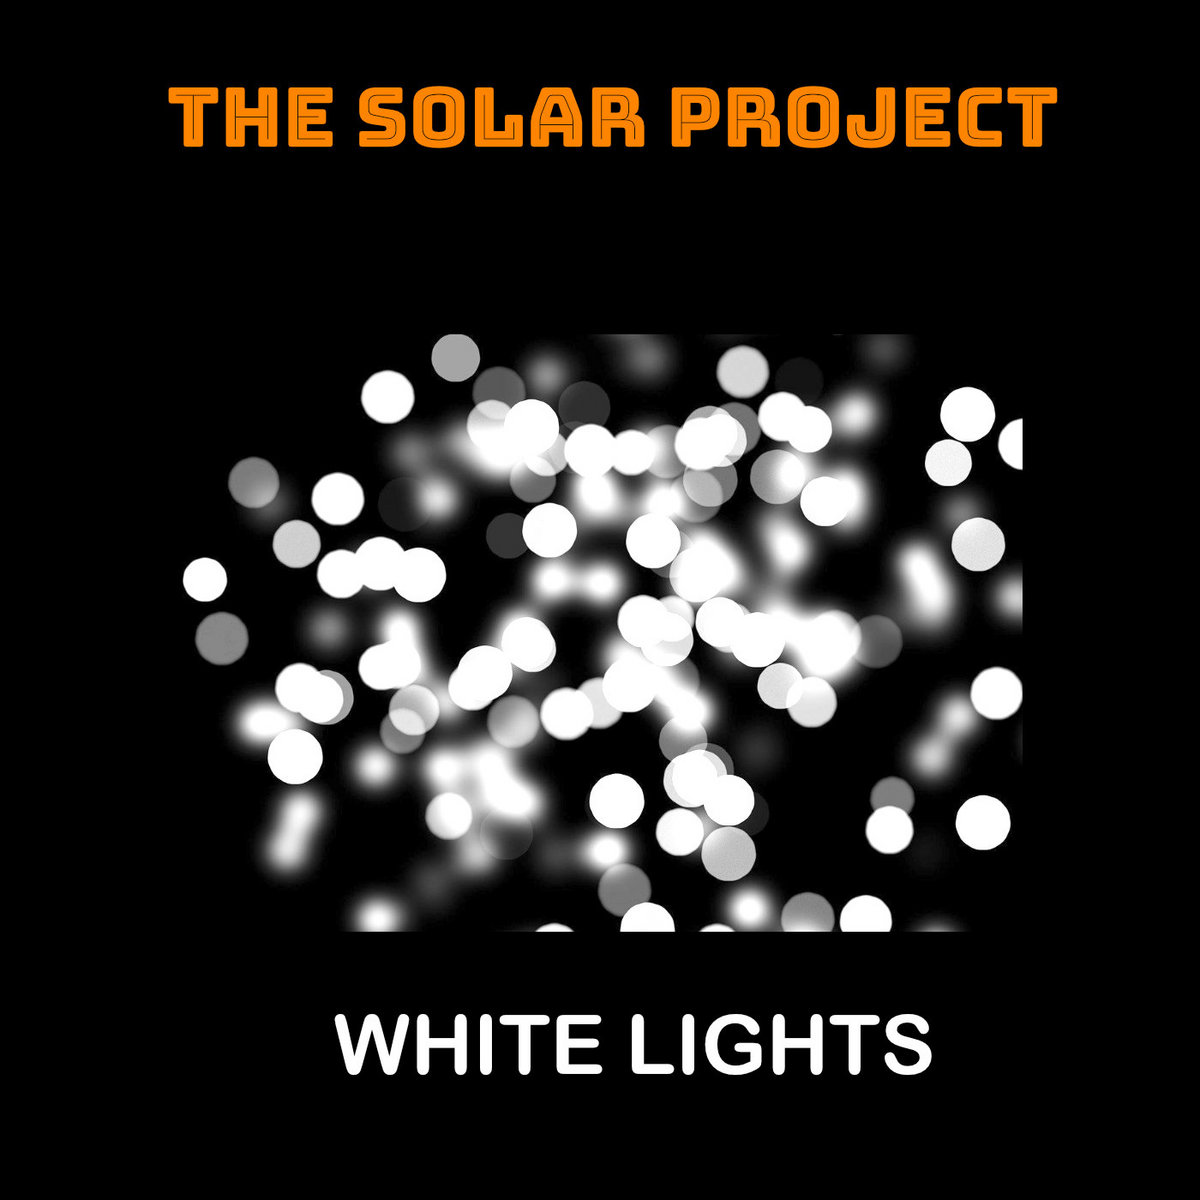 White Lights by The Solar Project